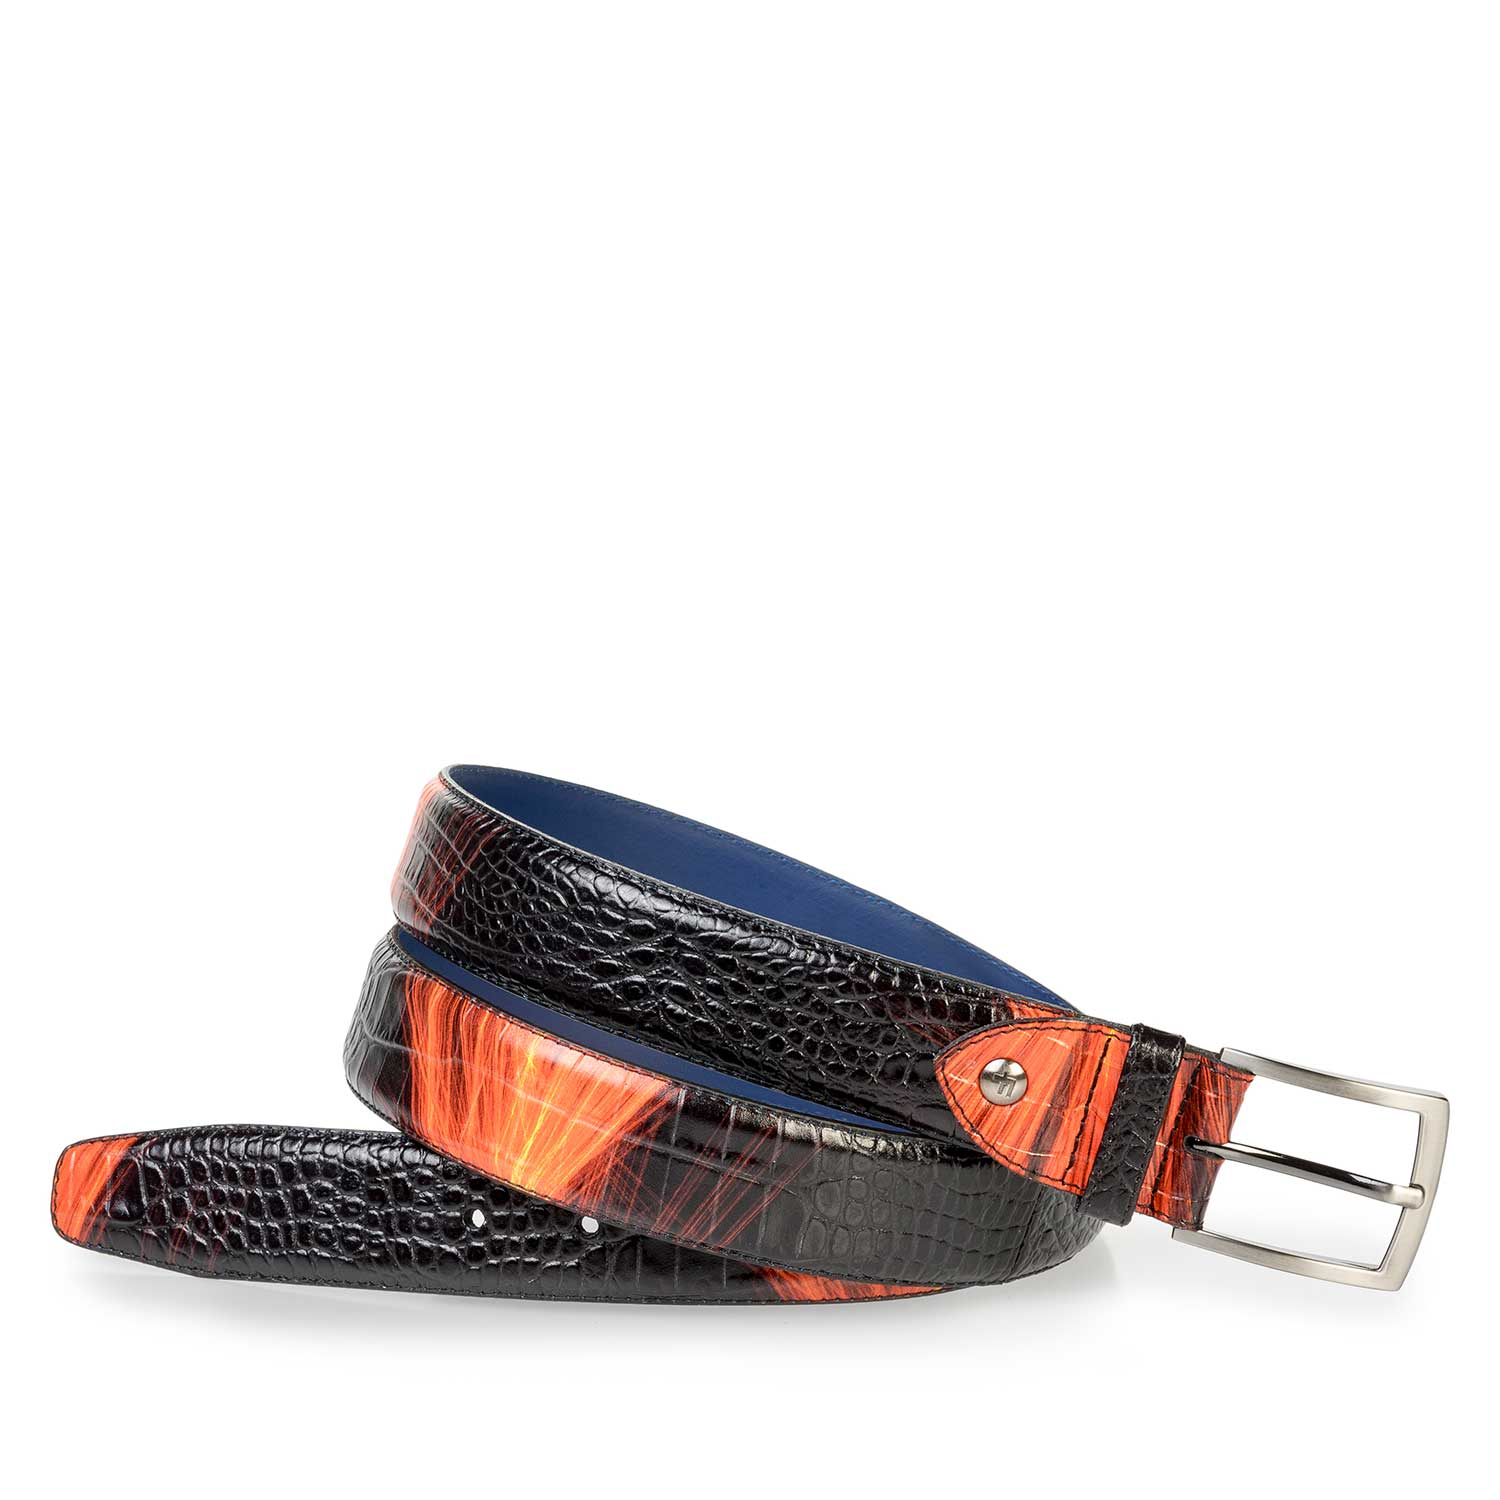 75201/44 - Premium red calf leather belt with lightning bolt print